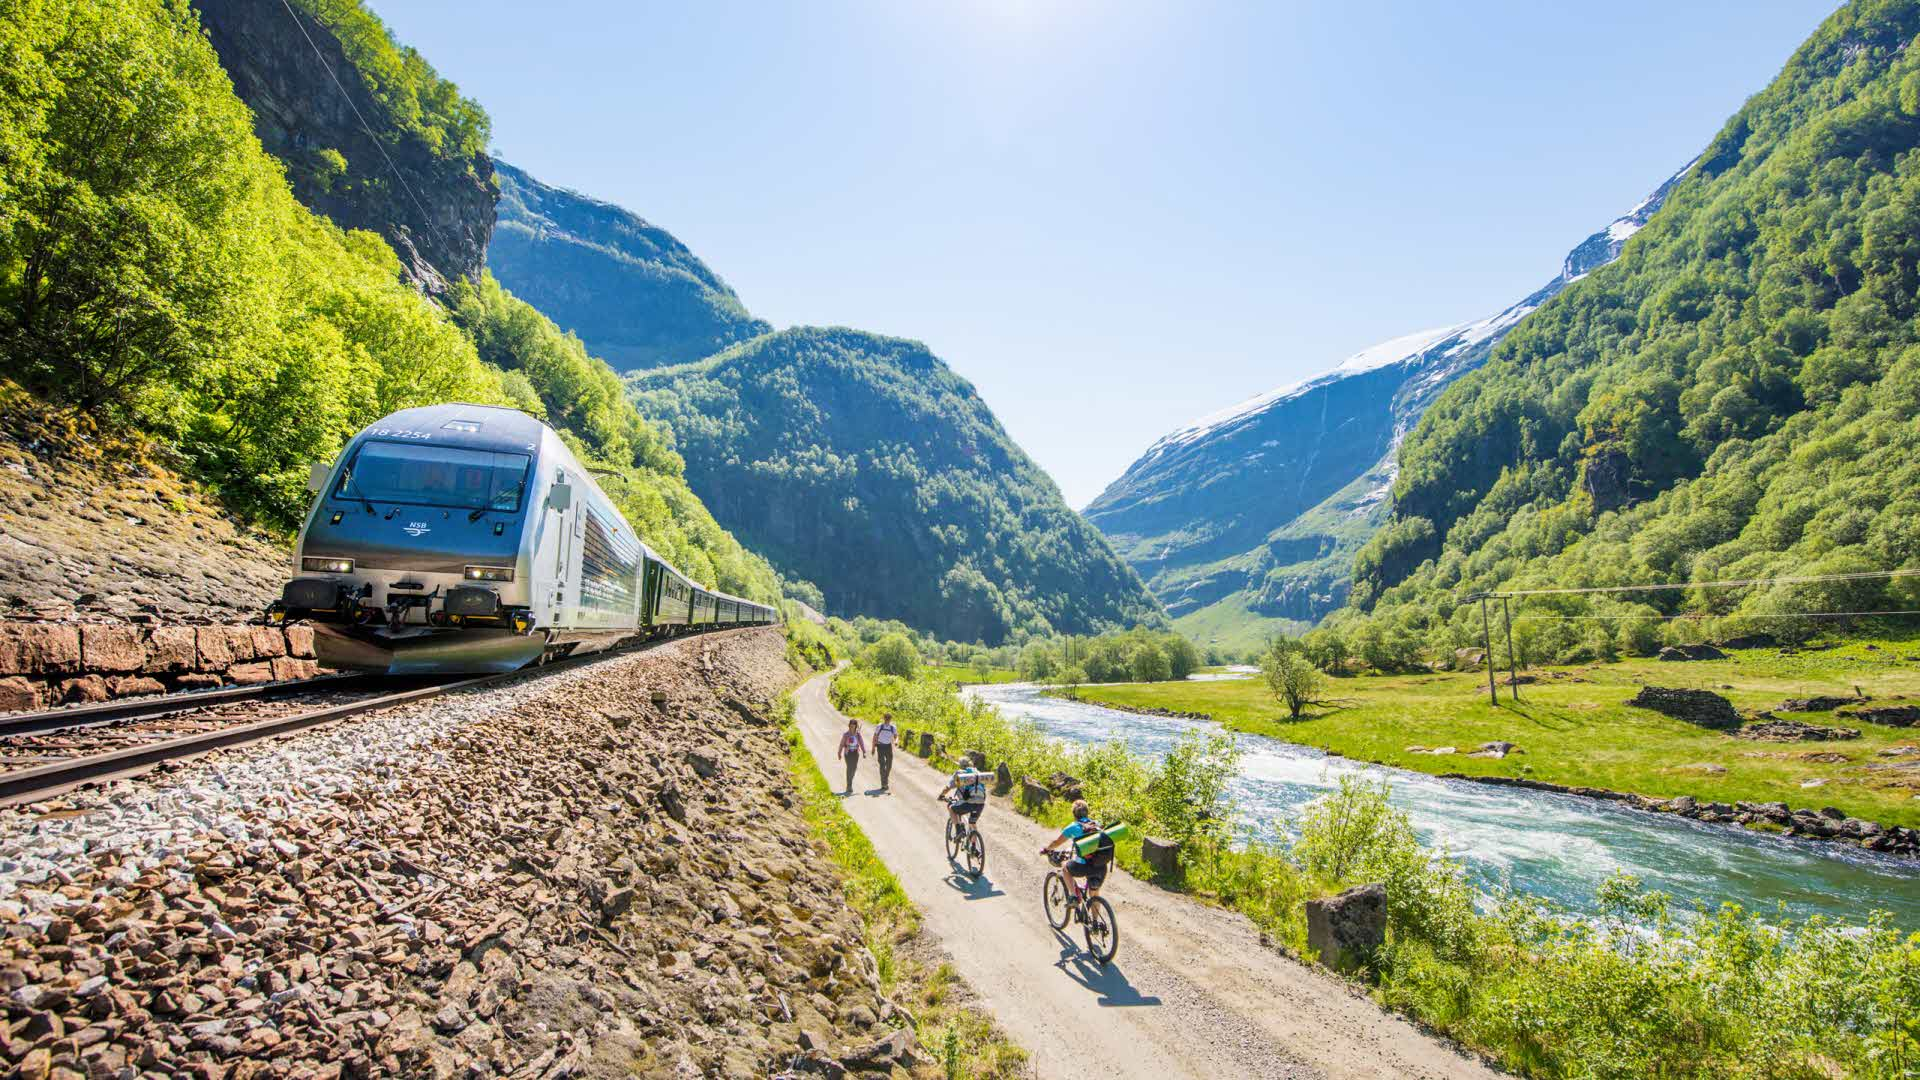 Pedestrians and cyclists travelling along the Flåmselv river on a warm summer day as the Flåm Railway passes by